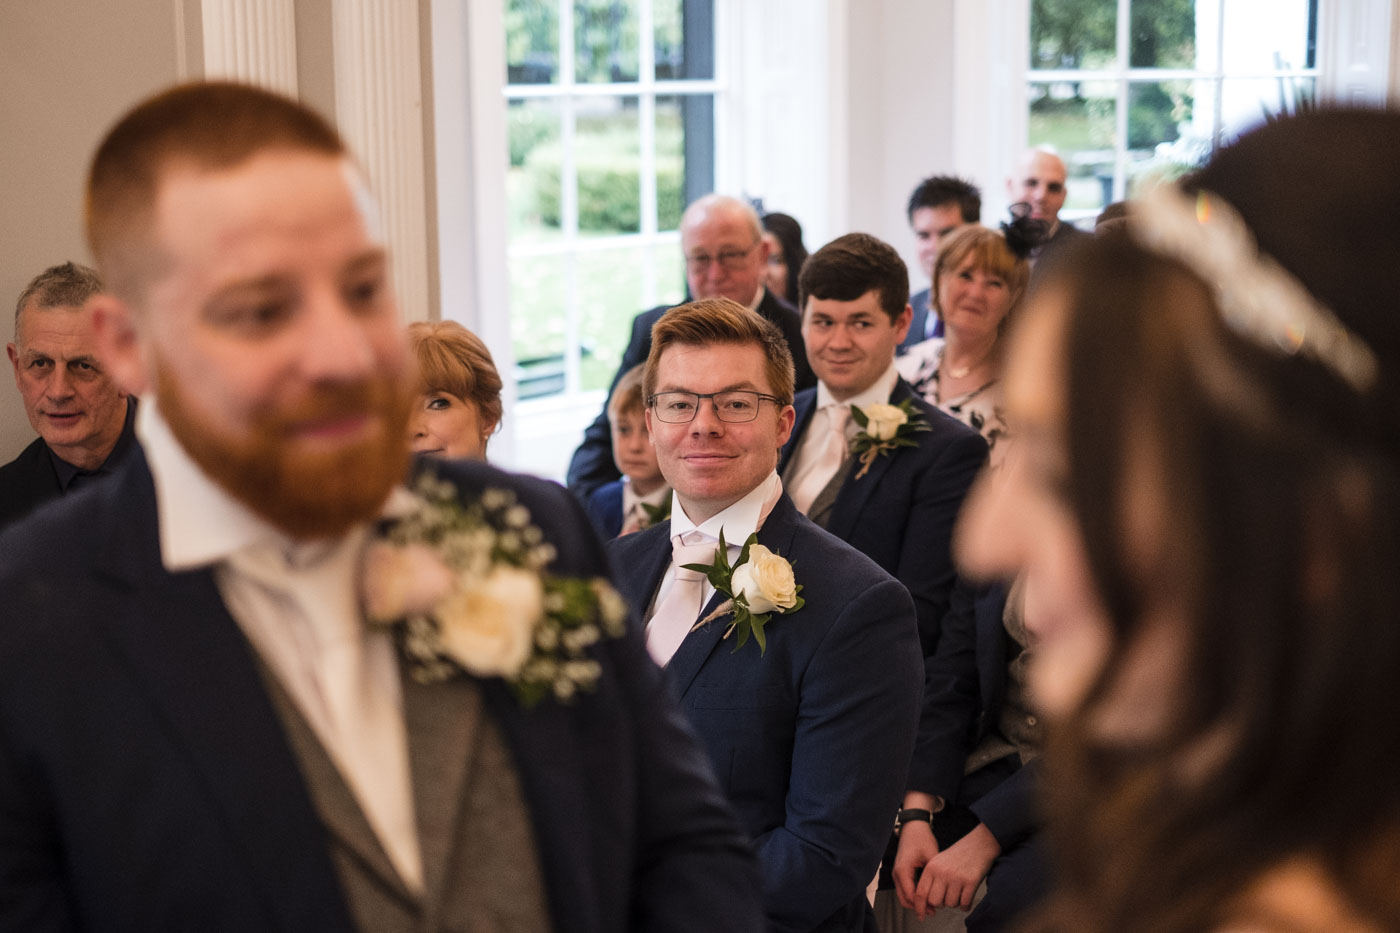 best man looking happy as he watched the wedding ceremony